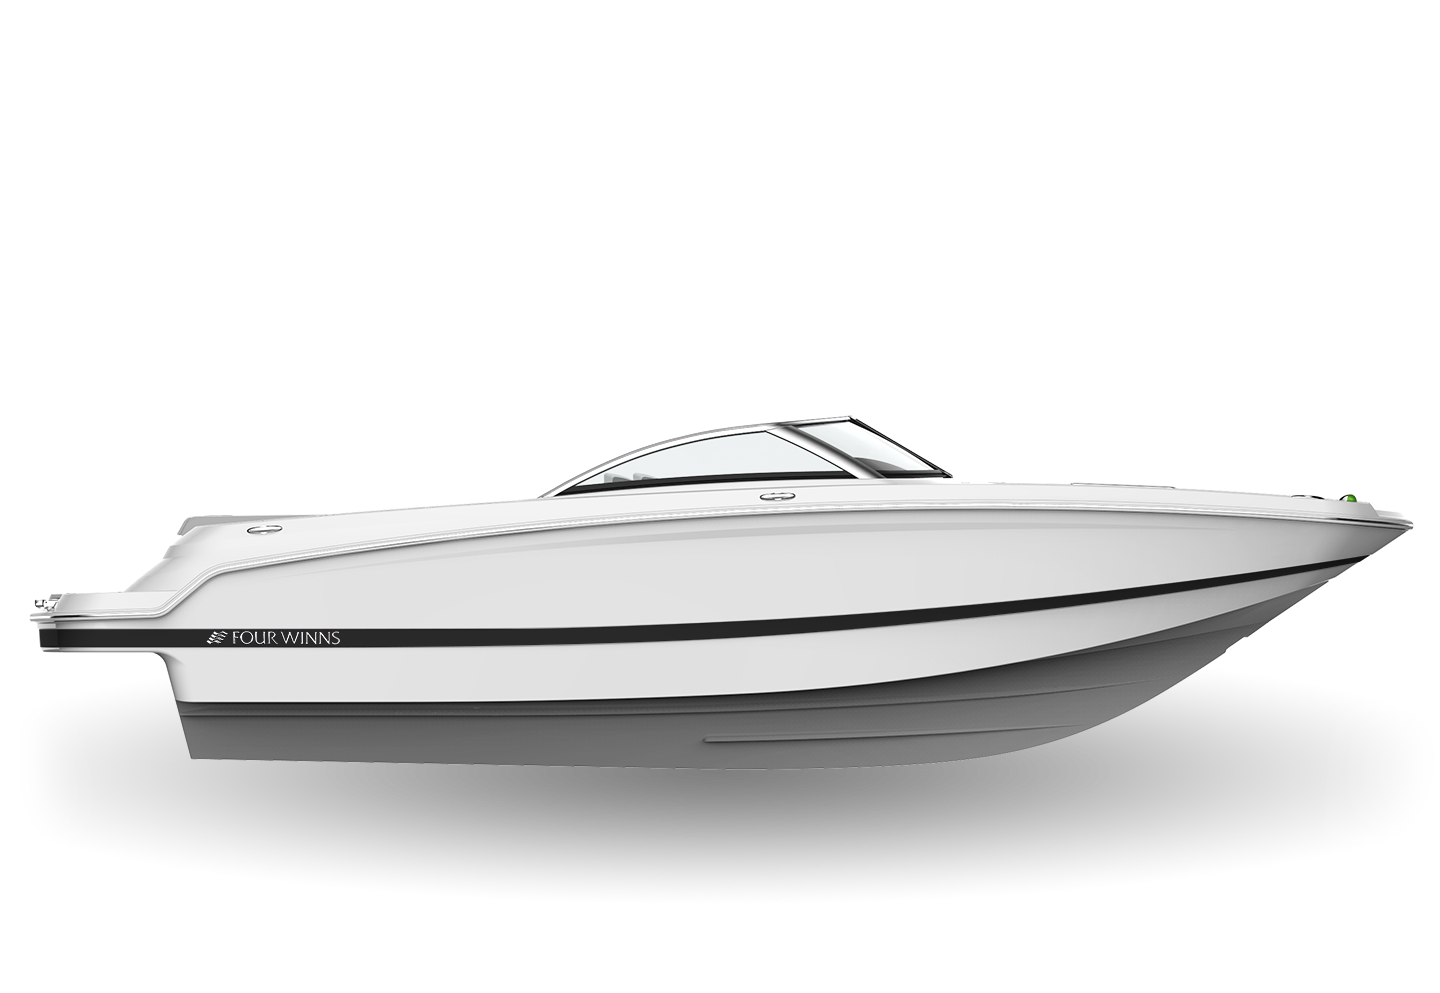 speed boat png transparent speed boat images #18512